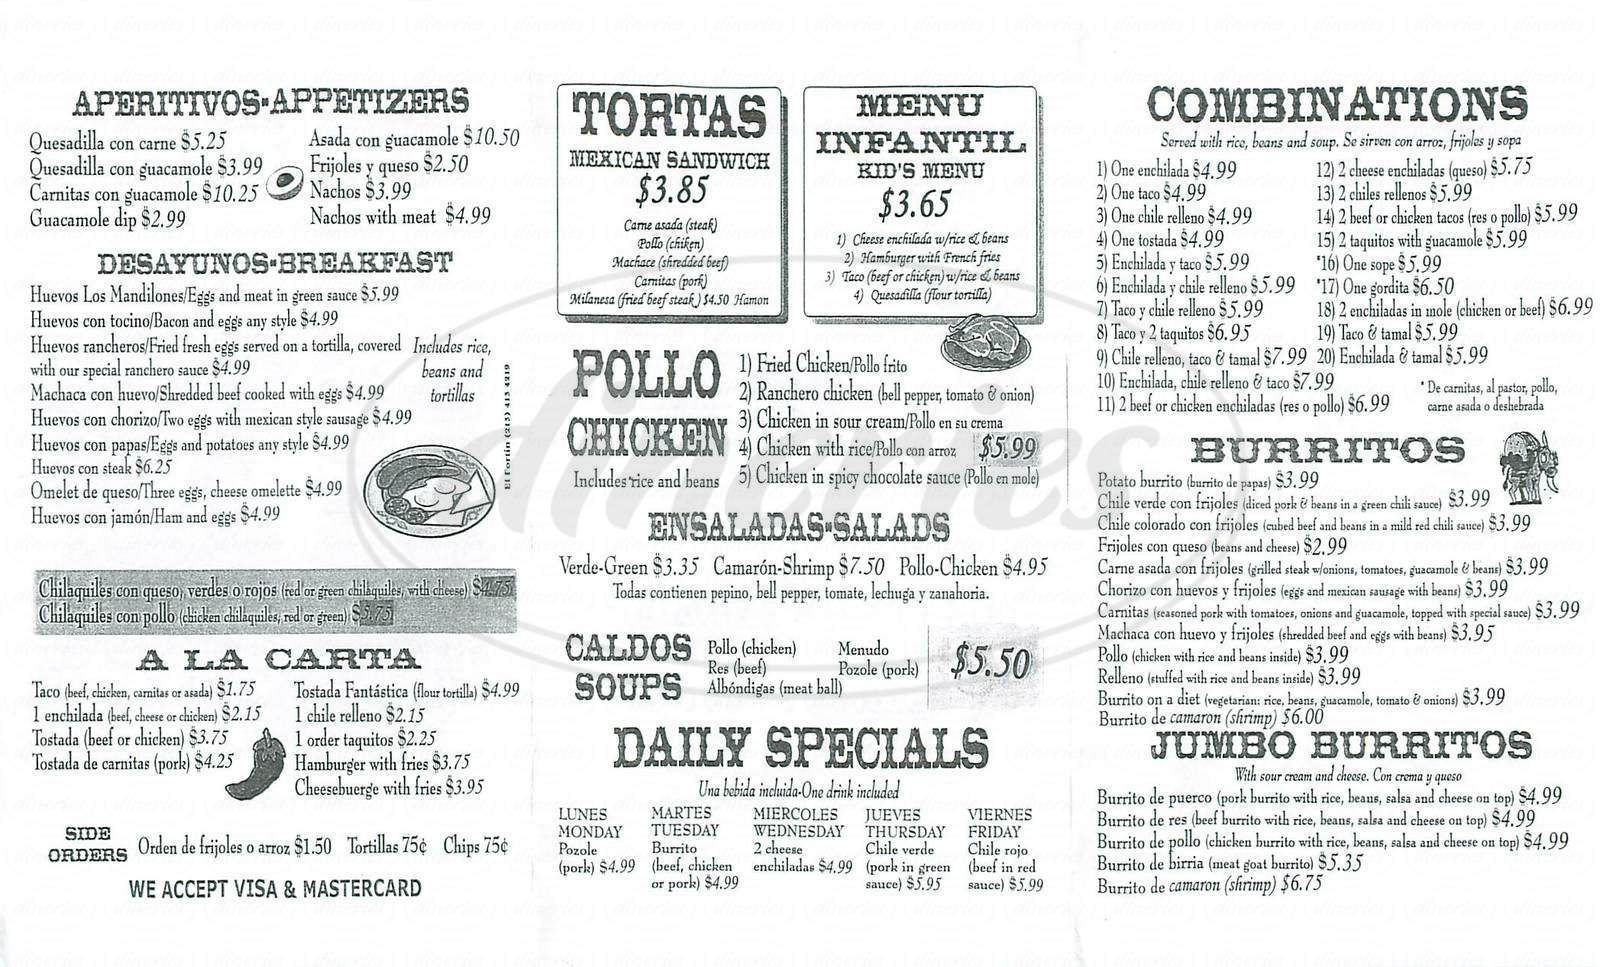 menu for Don Diego's